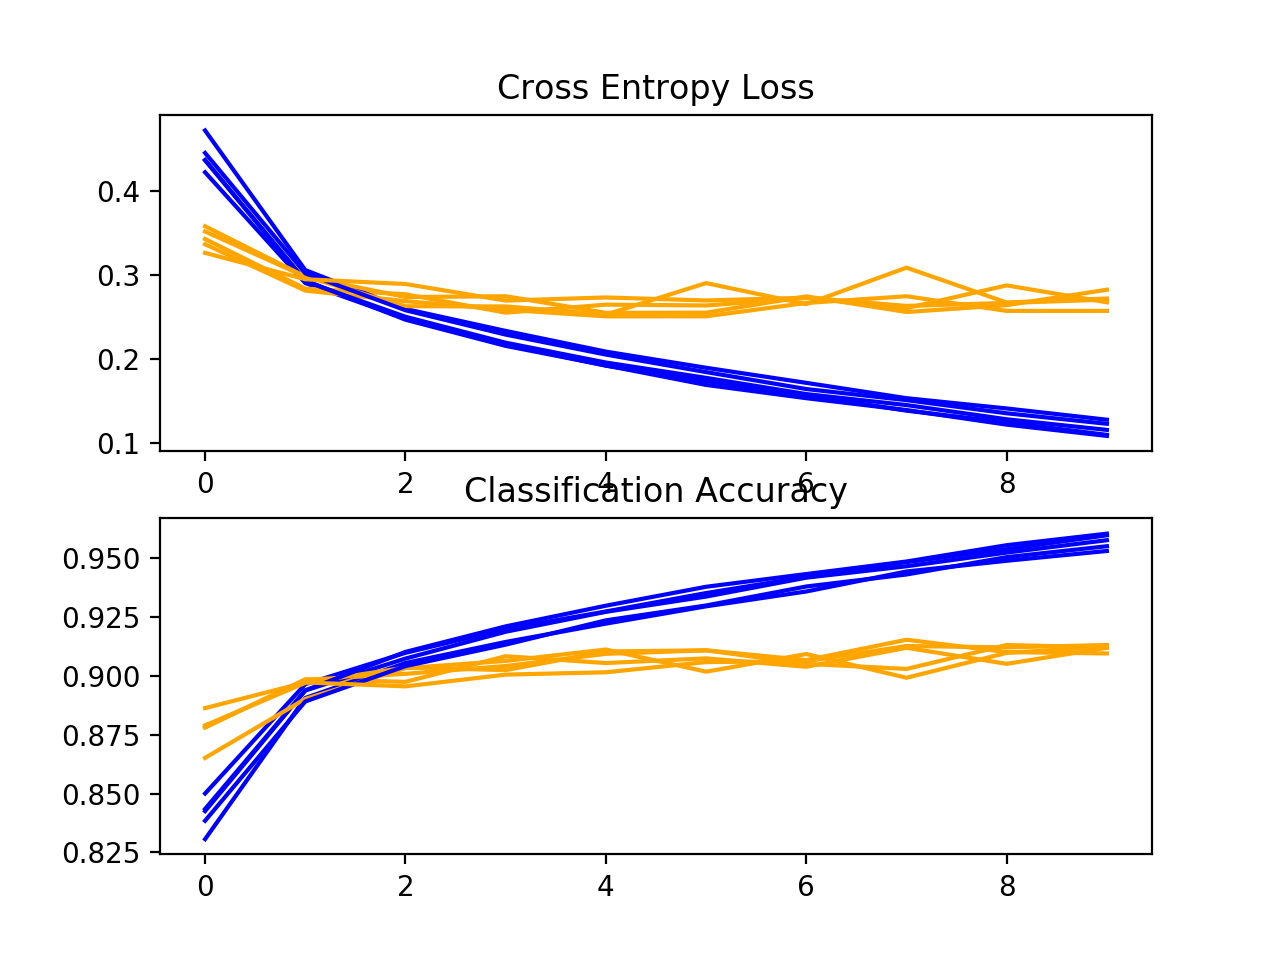 Loss-and-Accuracy-Learning-Curves-for-the-Baseline-Model-on-the-Fashion-MNIST-Dataset-During-k-Fold-Cross-Validation